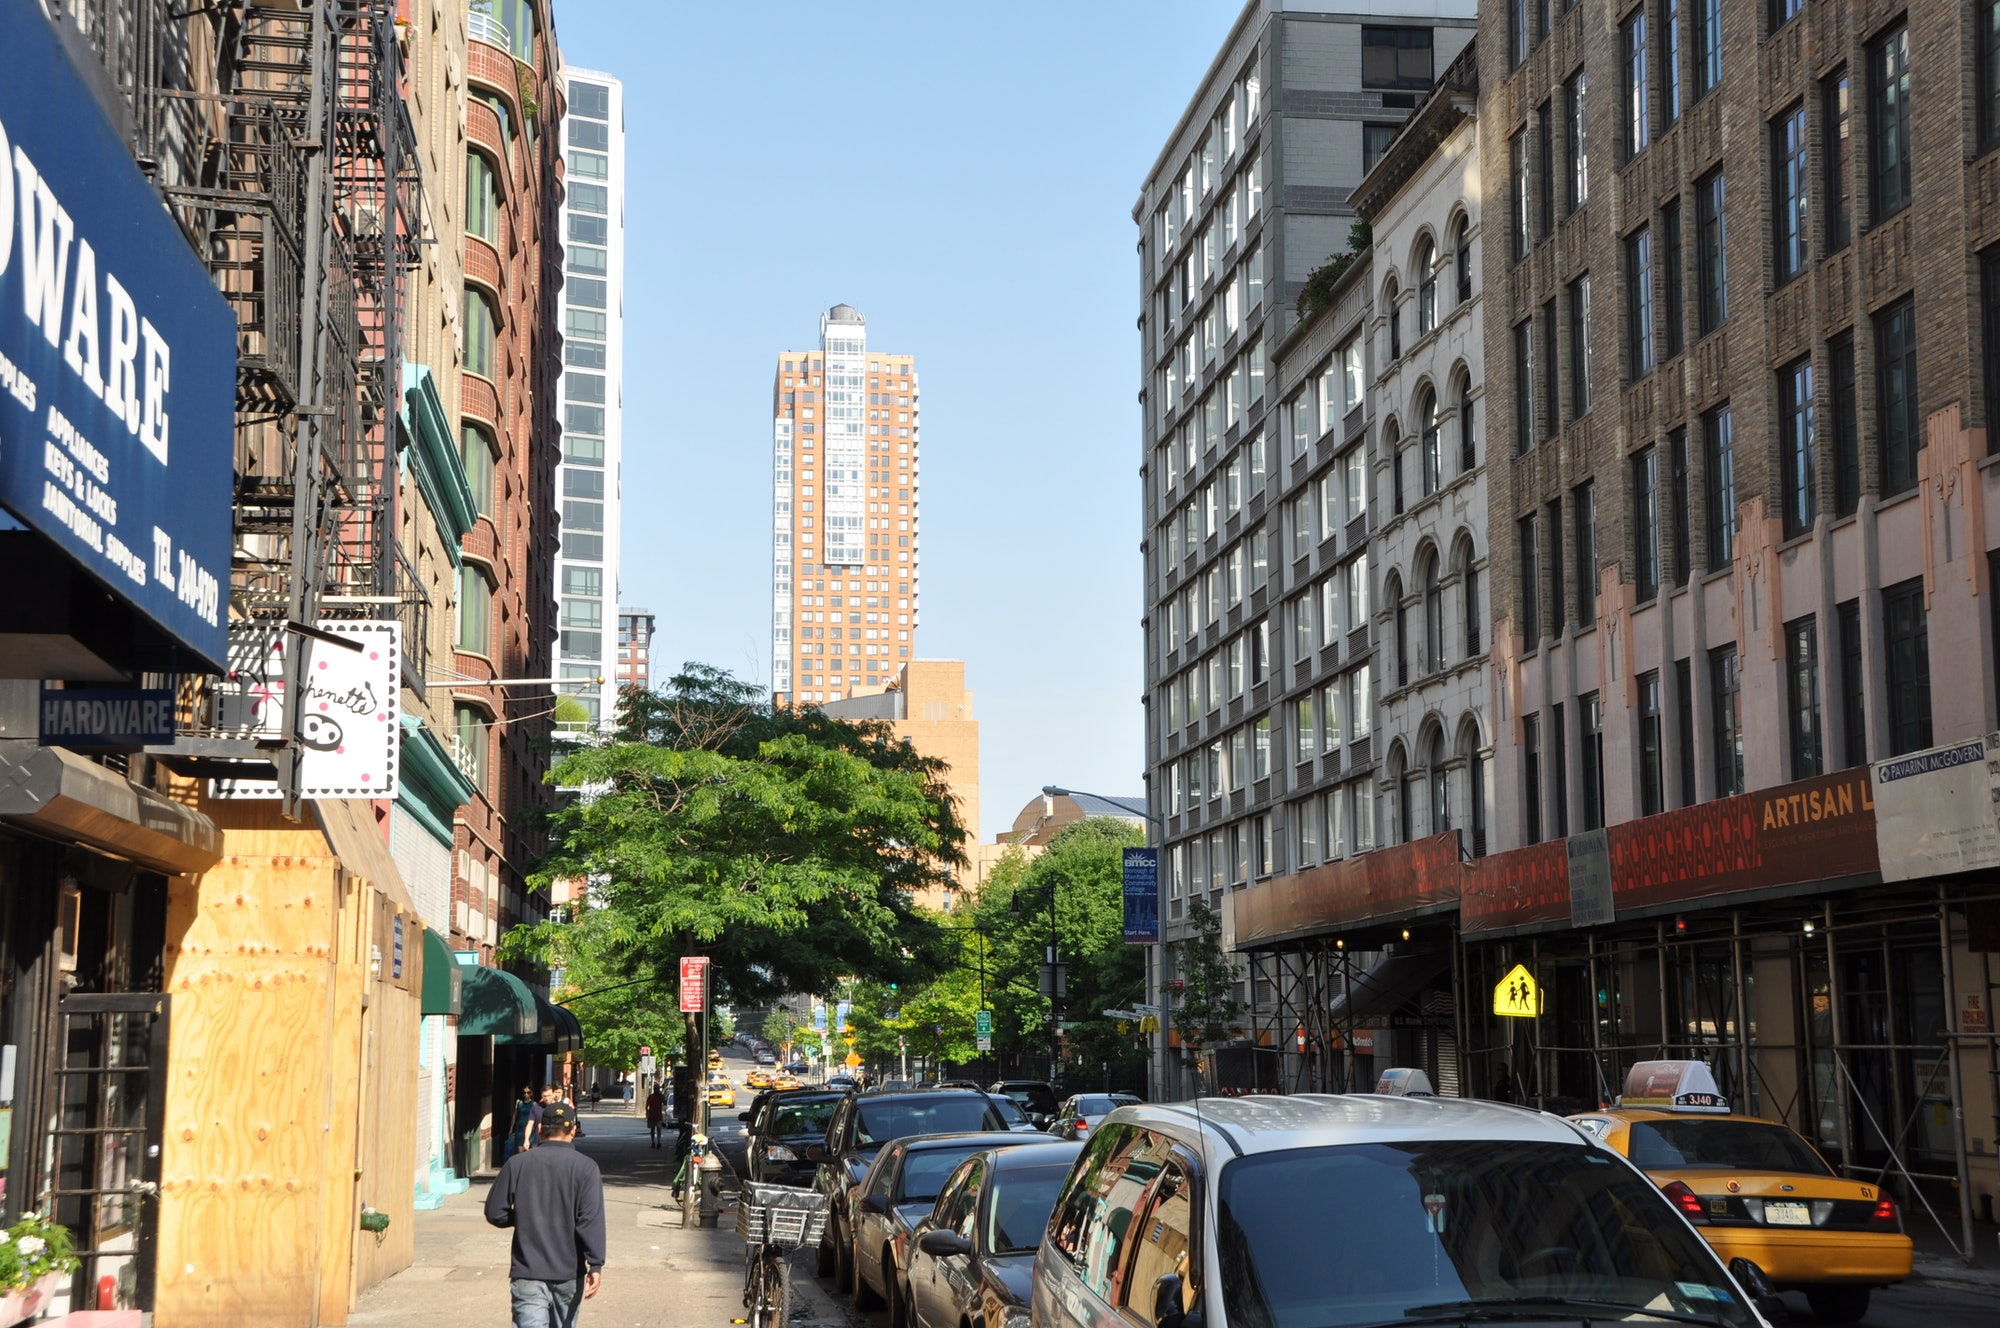 New York Streets, Rivers and Places